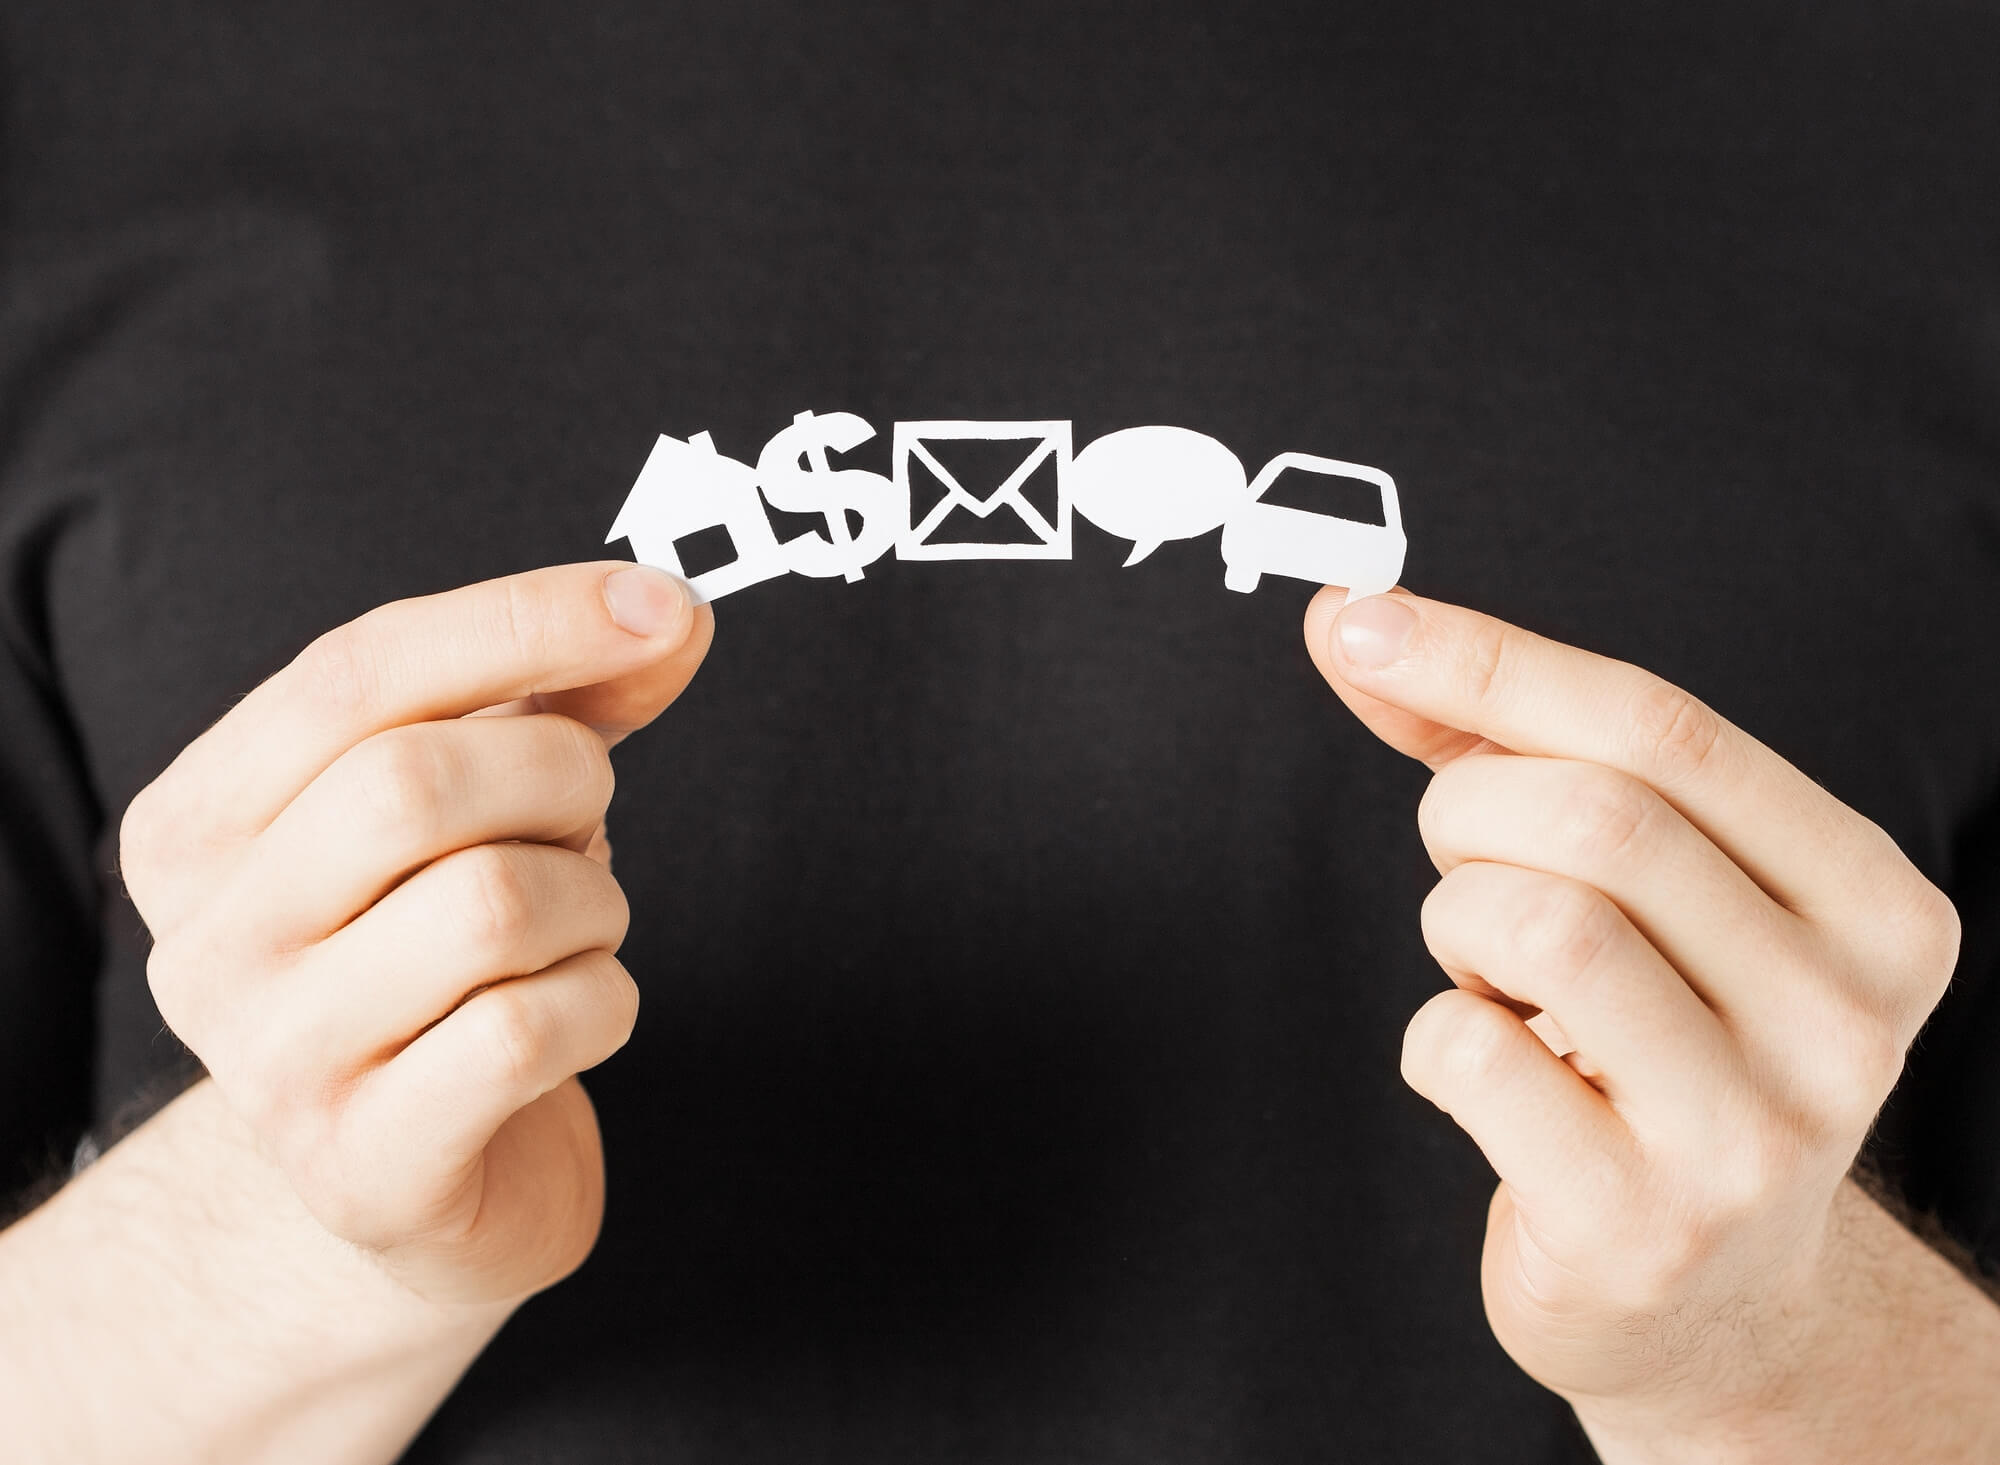 Two hands holding a paper cut out of a house, dollar sign, envelope, message bubble and car